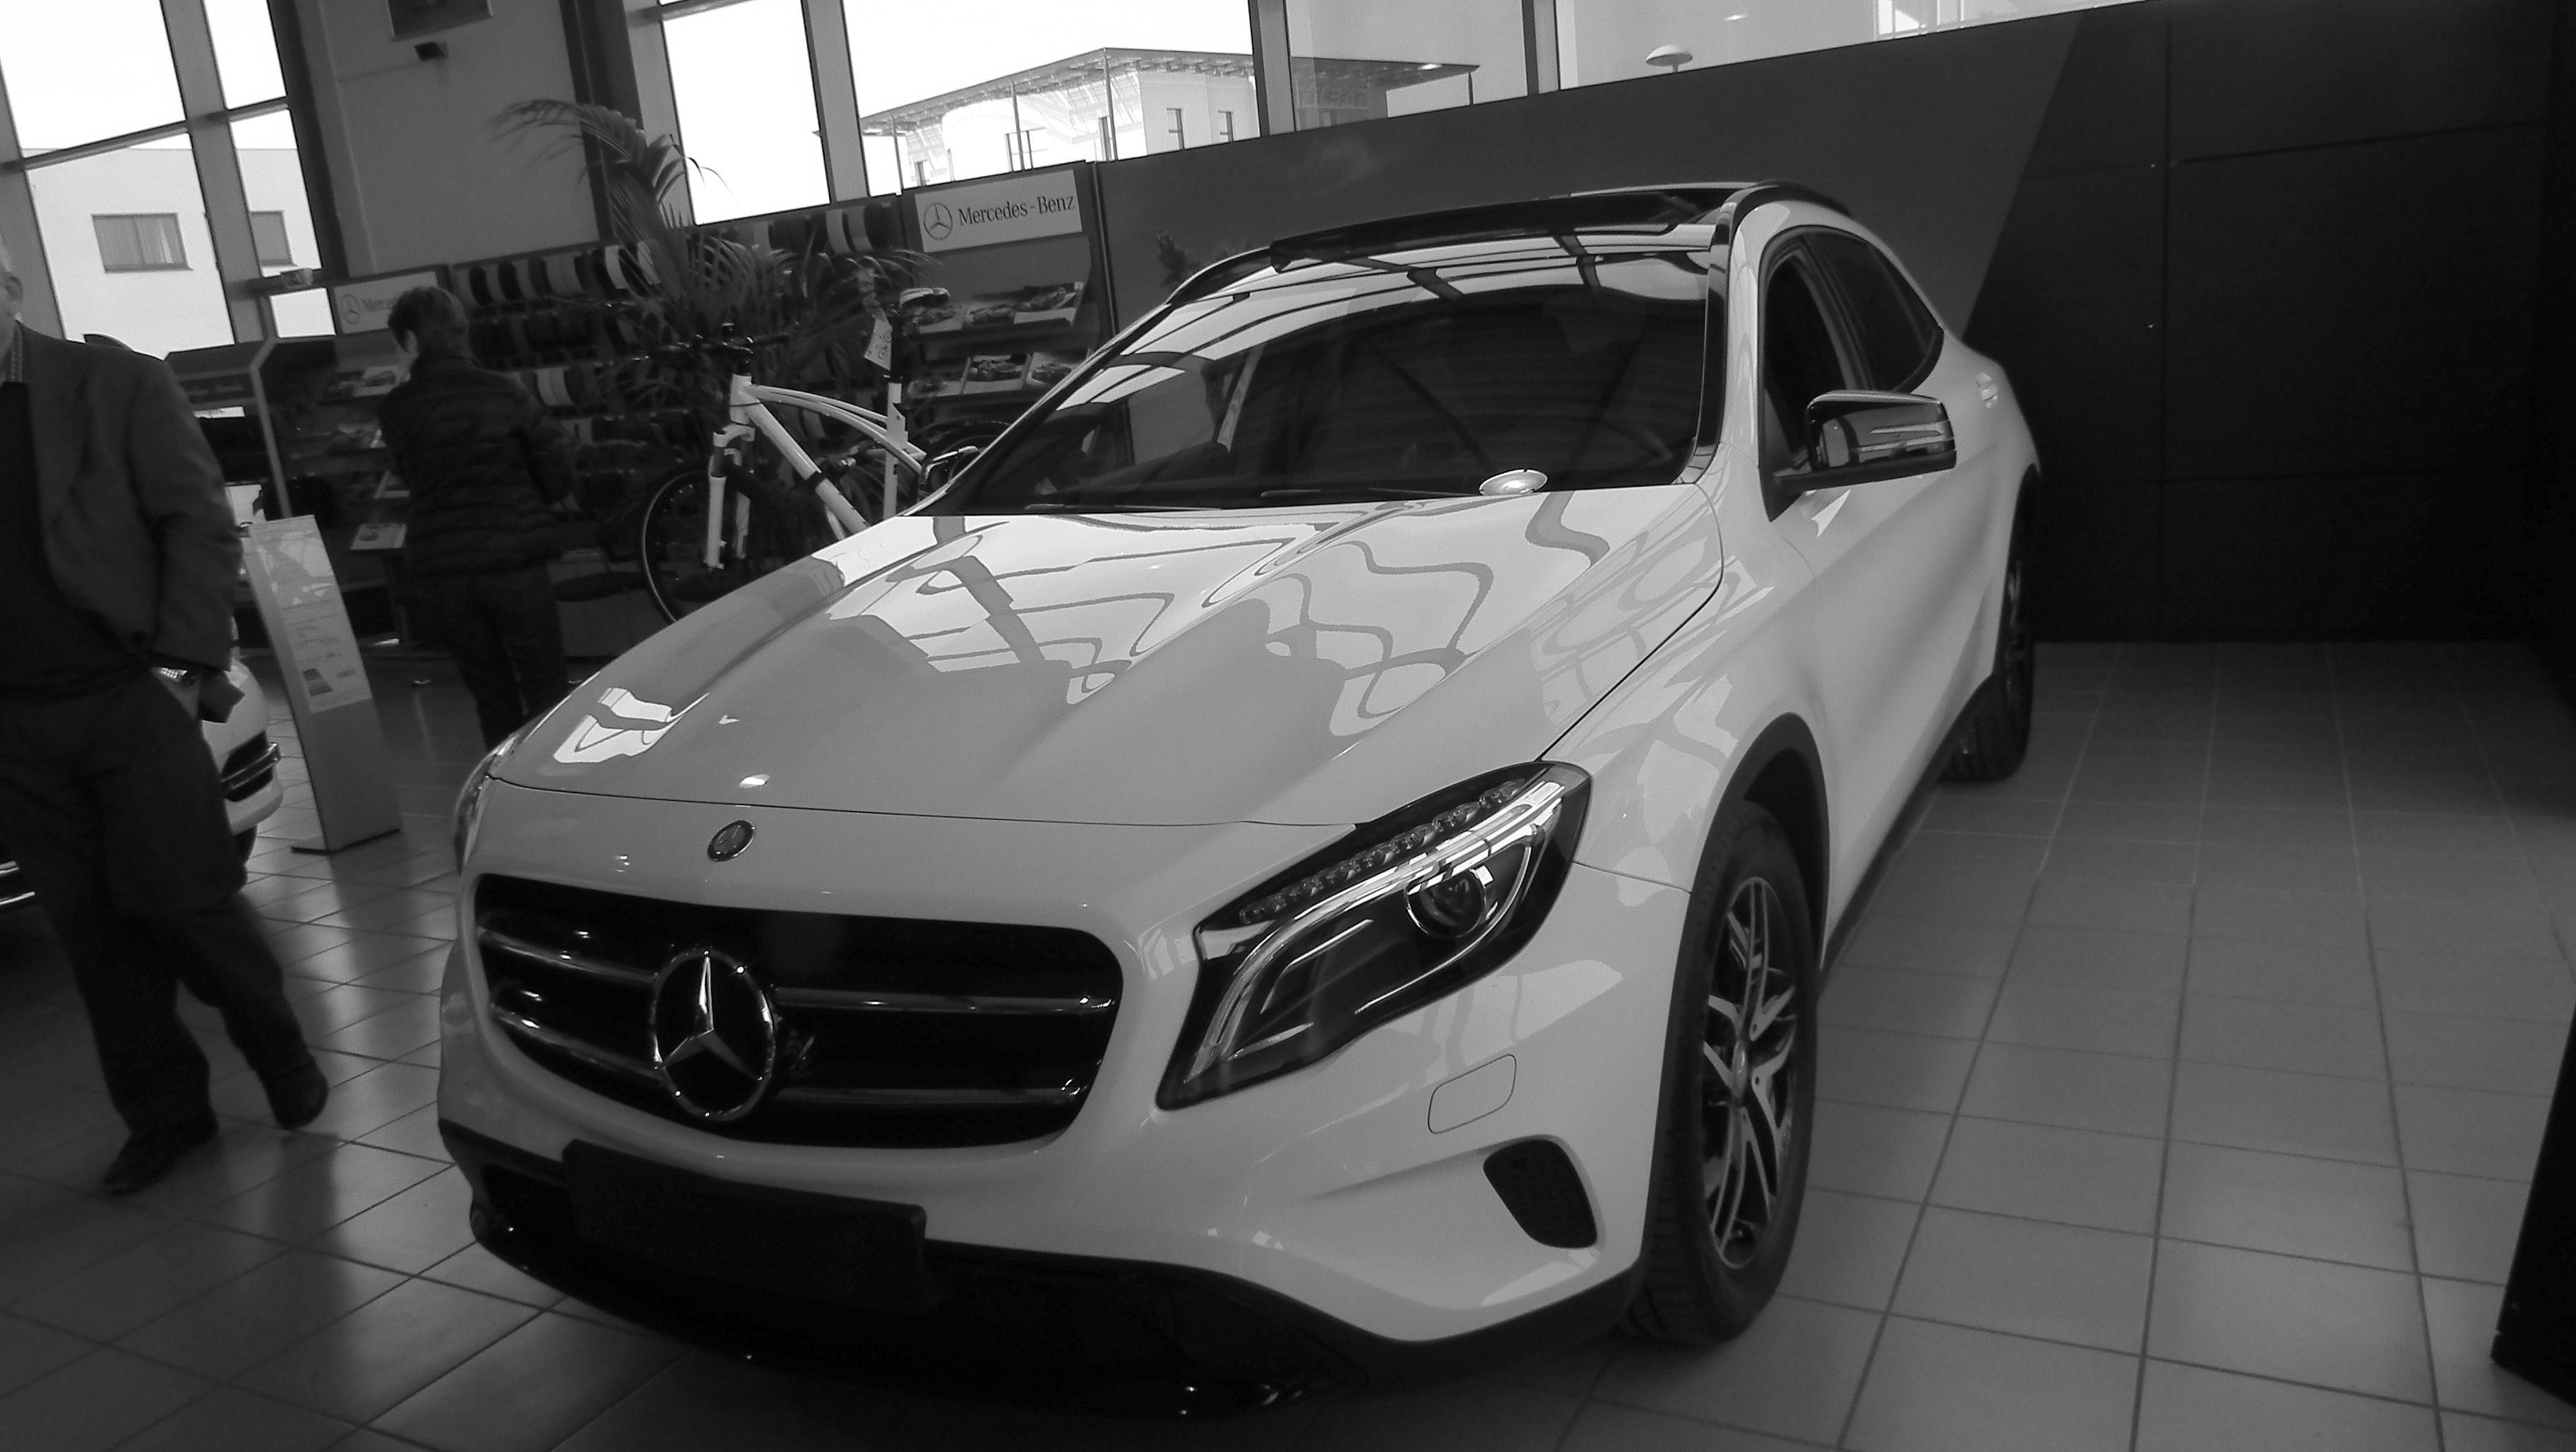 Voiture Neuf Blanche Pack Sport Black - Gla - Prepus - Photos - Club